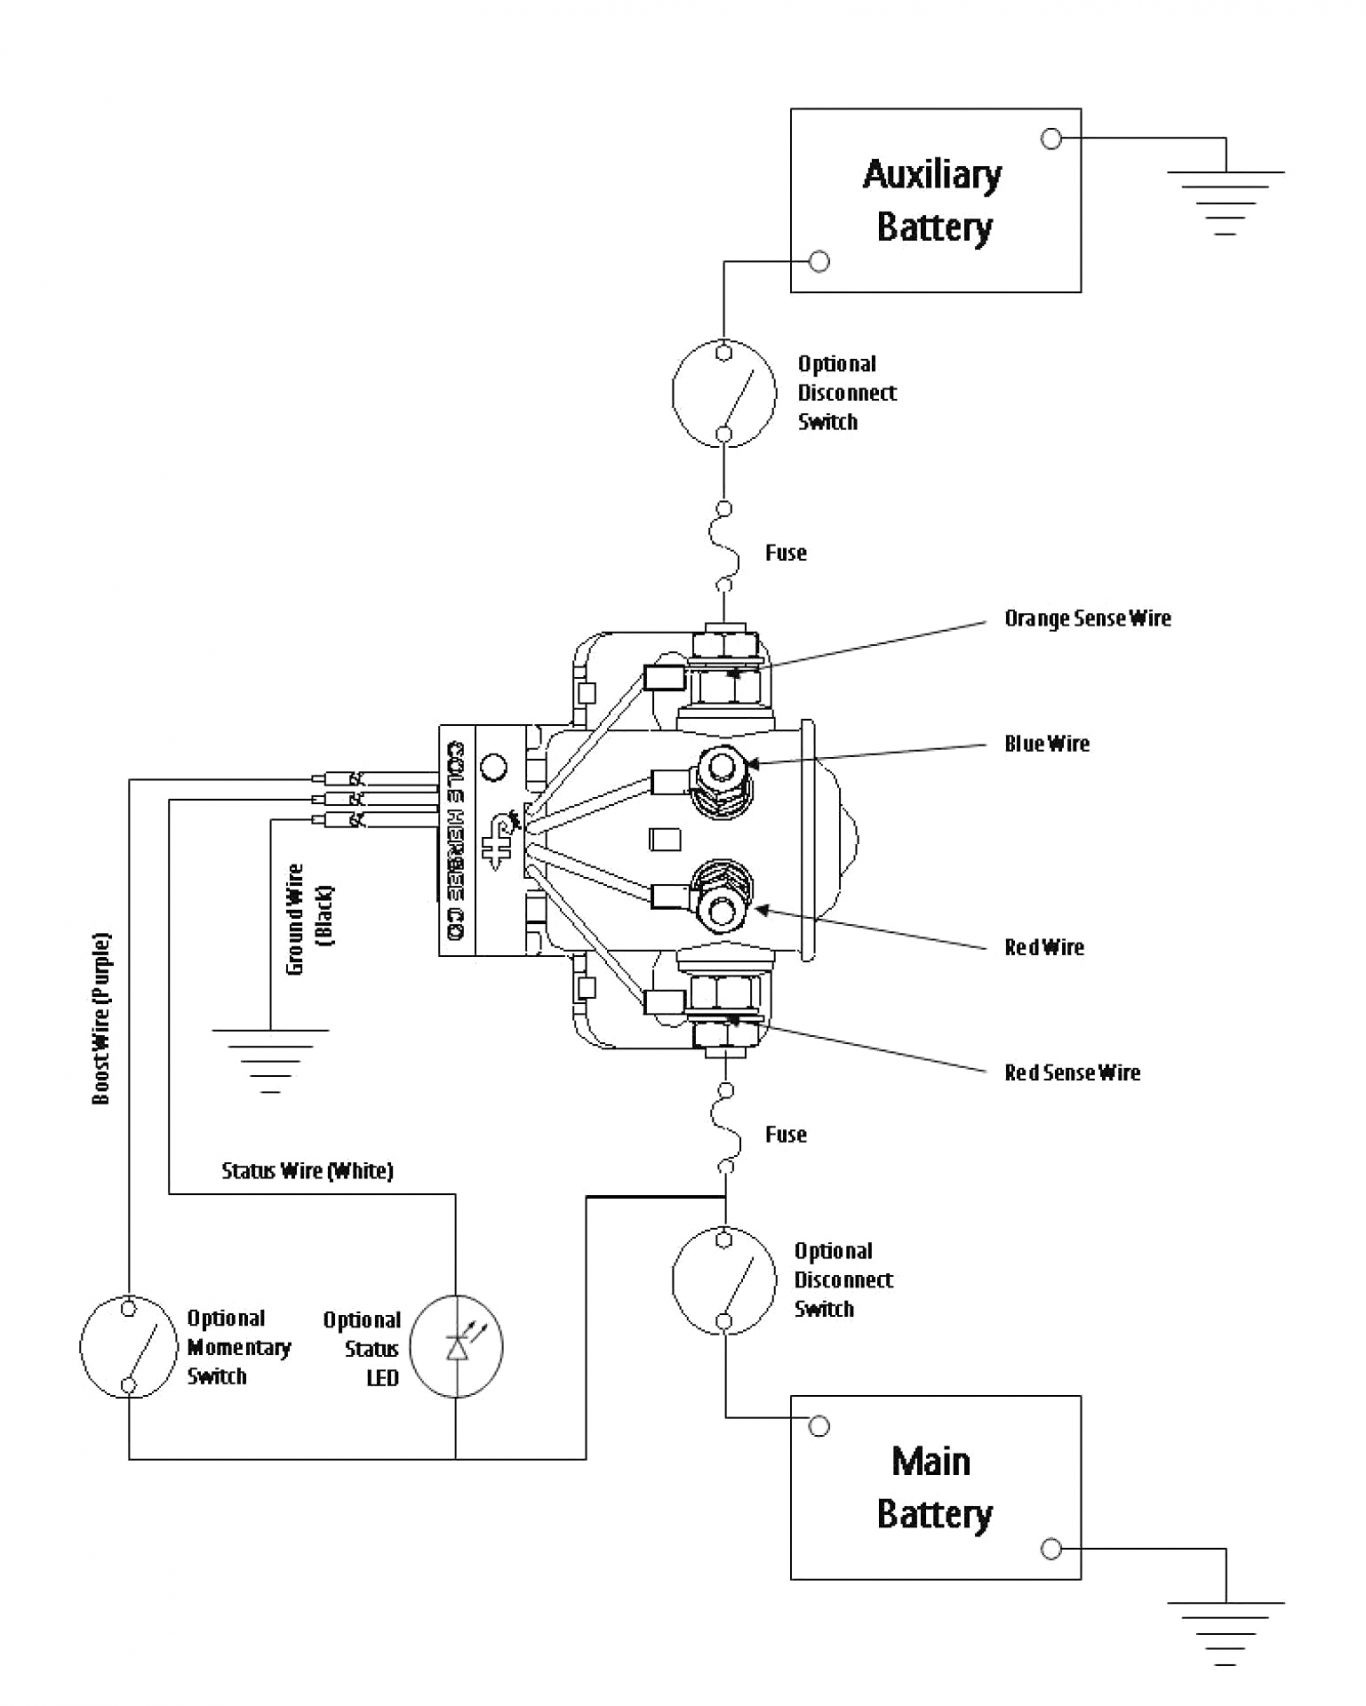 Camper battery wiring diagram wire center camper battery wiring diagram images gallery publicscrutiny Images